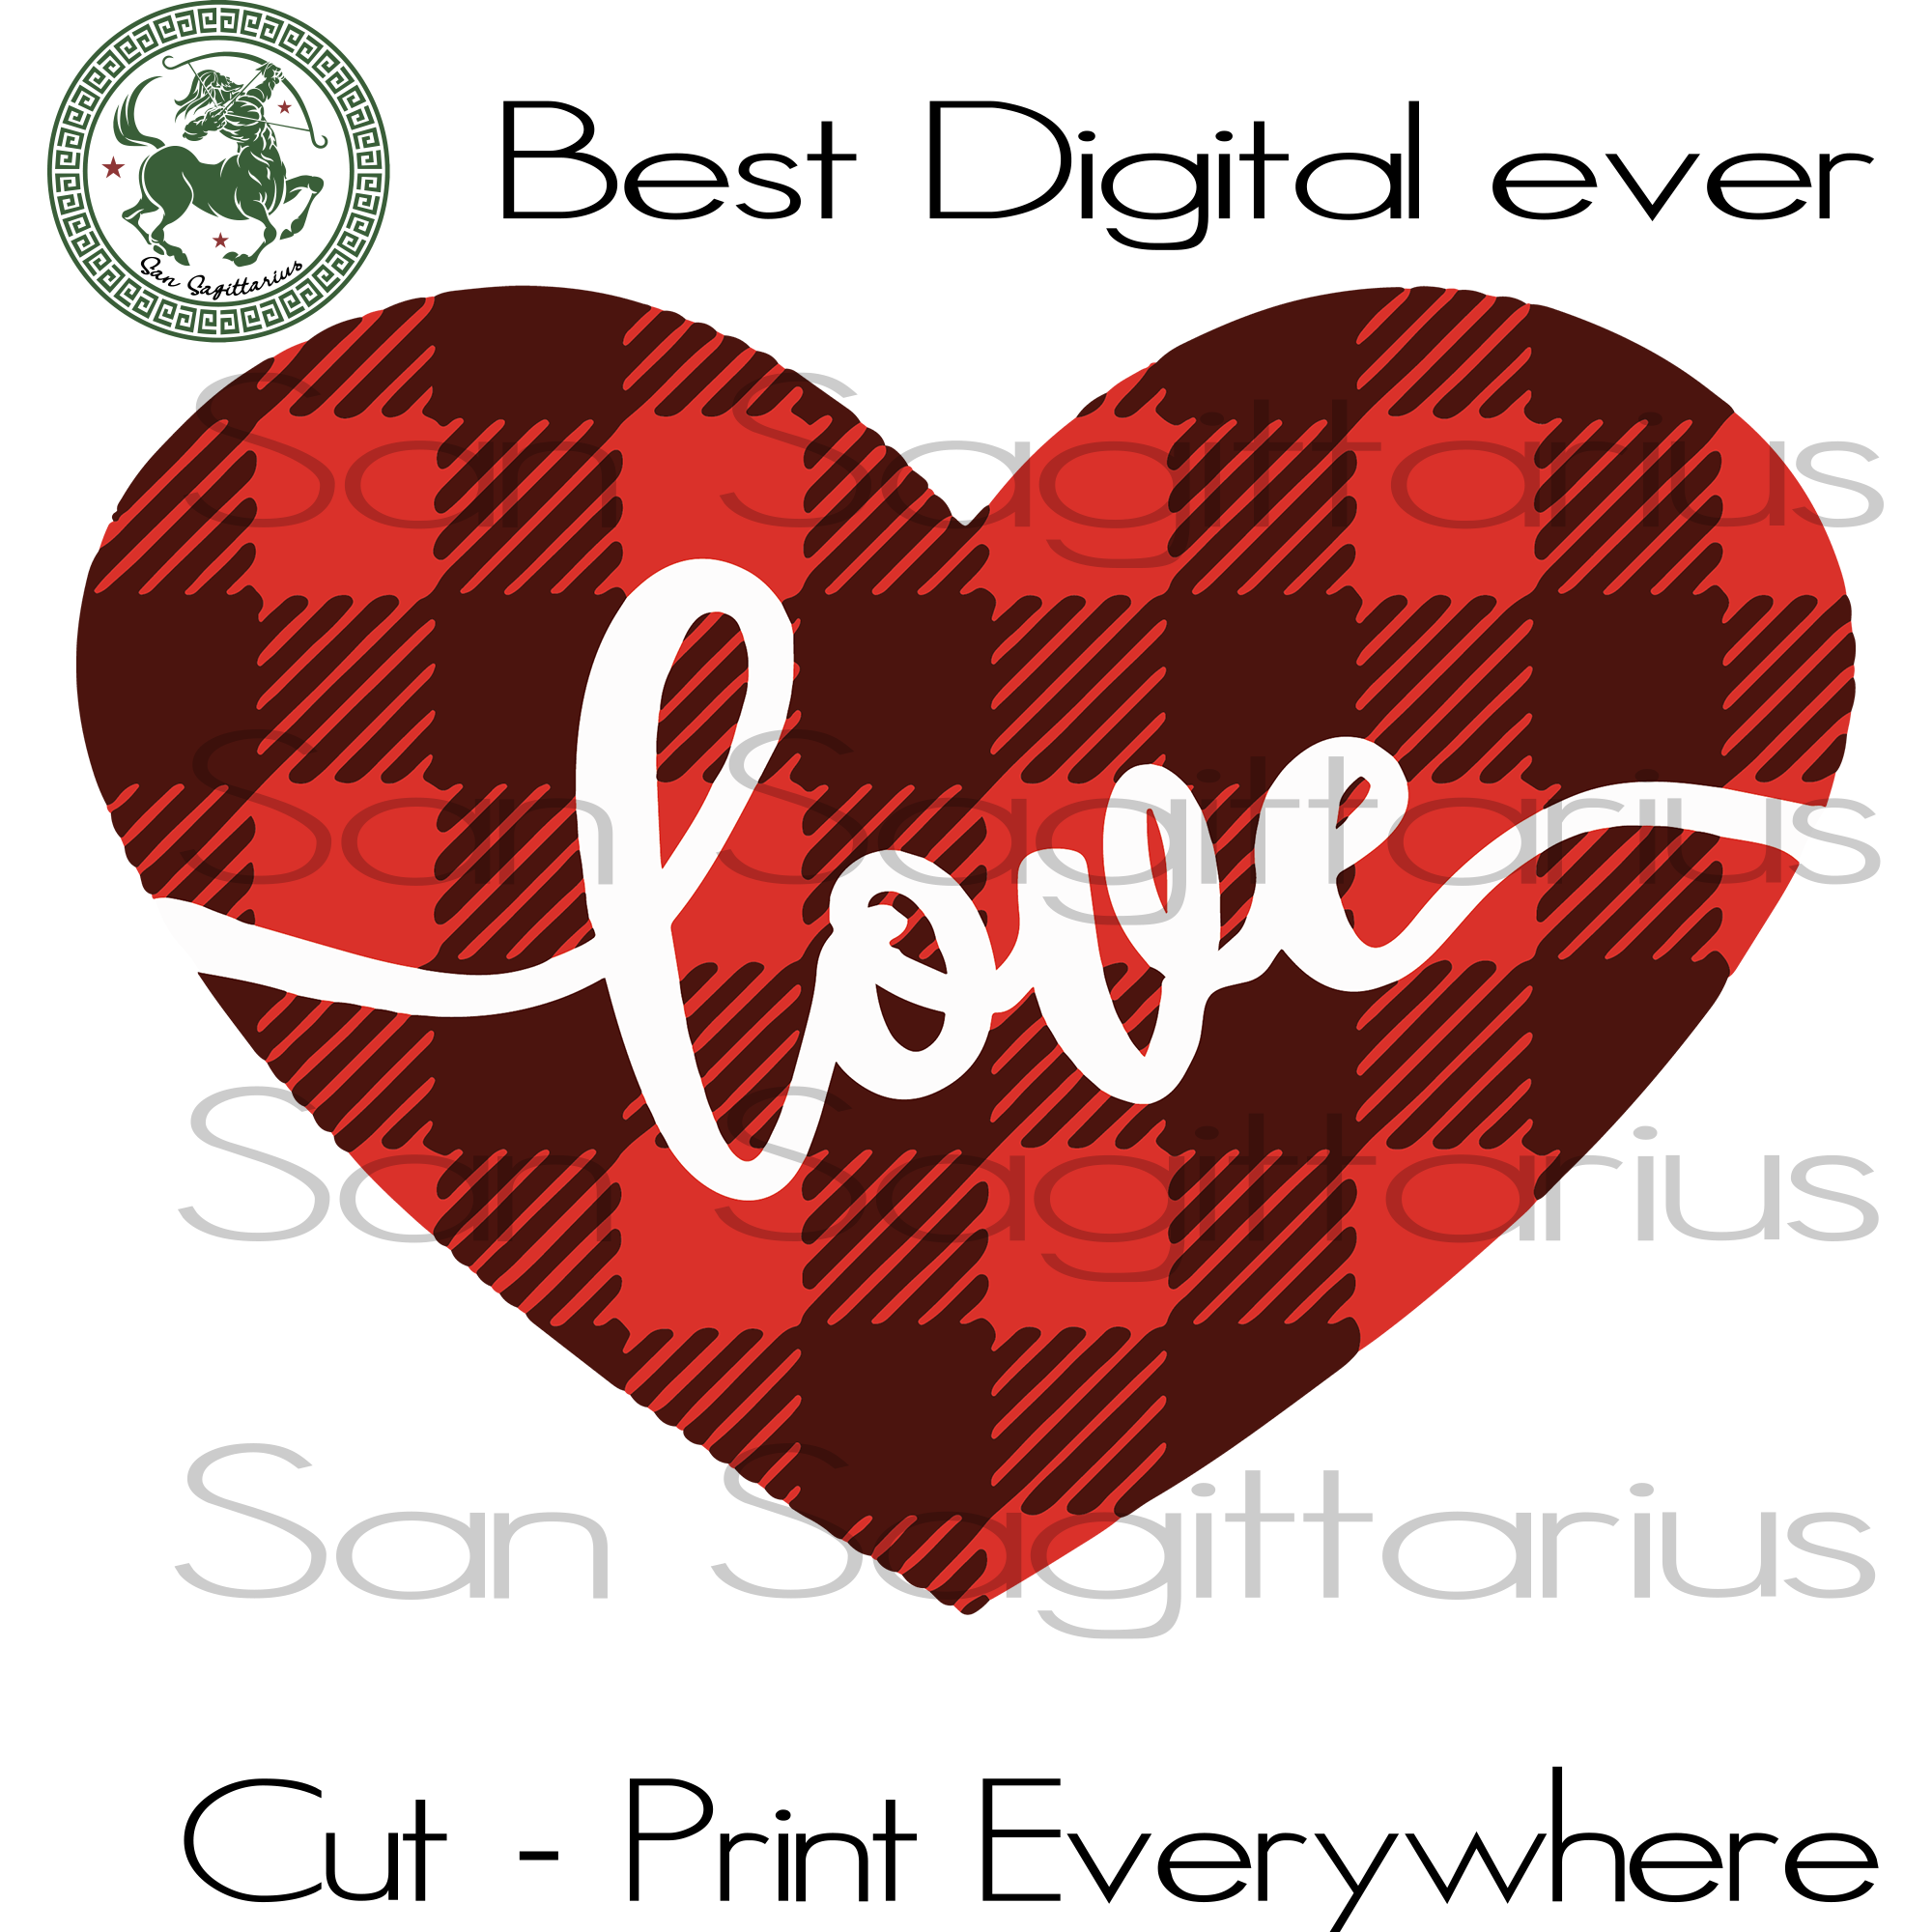 Valentines Day gift Svg, Valentines Day Heart Plaid Clipart SVG Files For Cricut Silhouette Instant Download | San Sagittarius